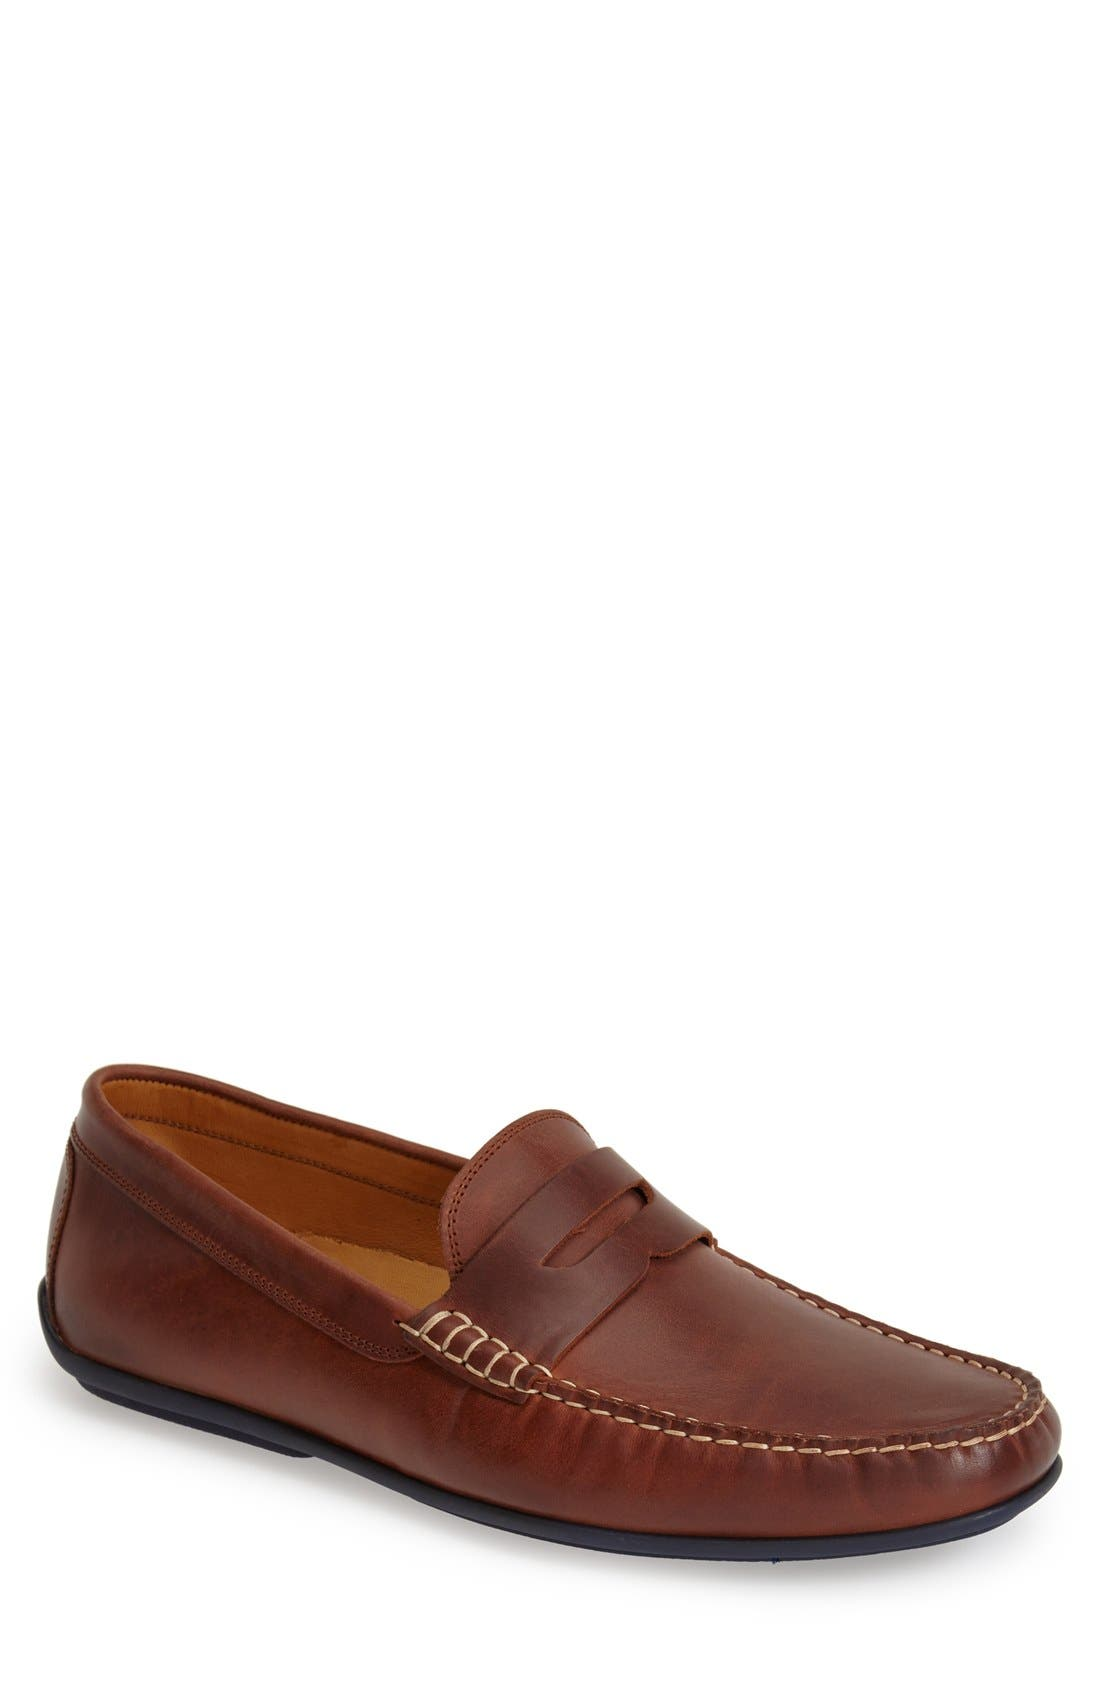 'Clinton' Leather Penny Loafer,                             Main thumbnail 1, color,                             Light Brown